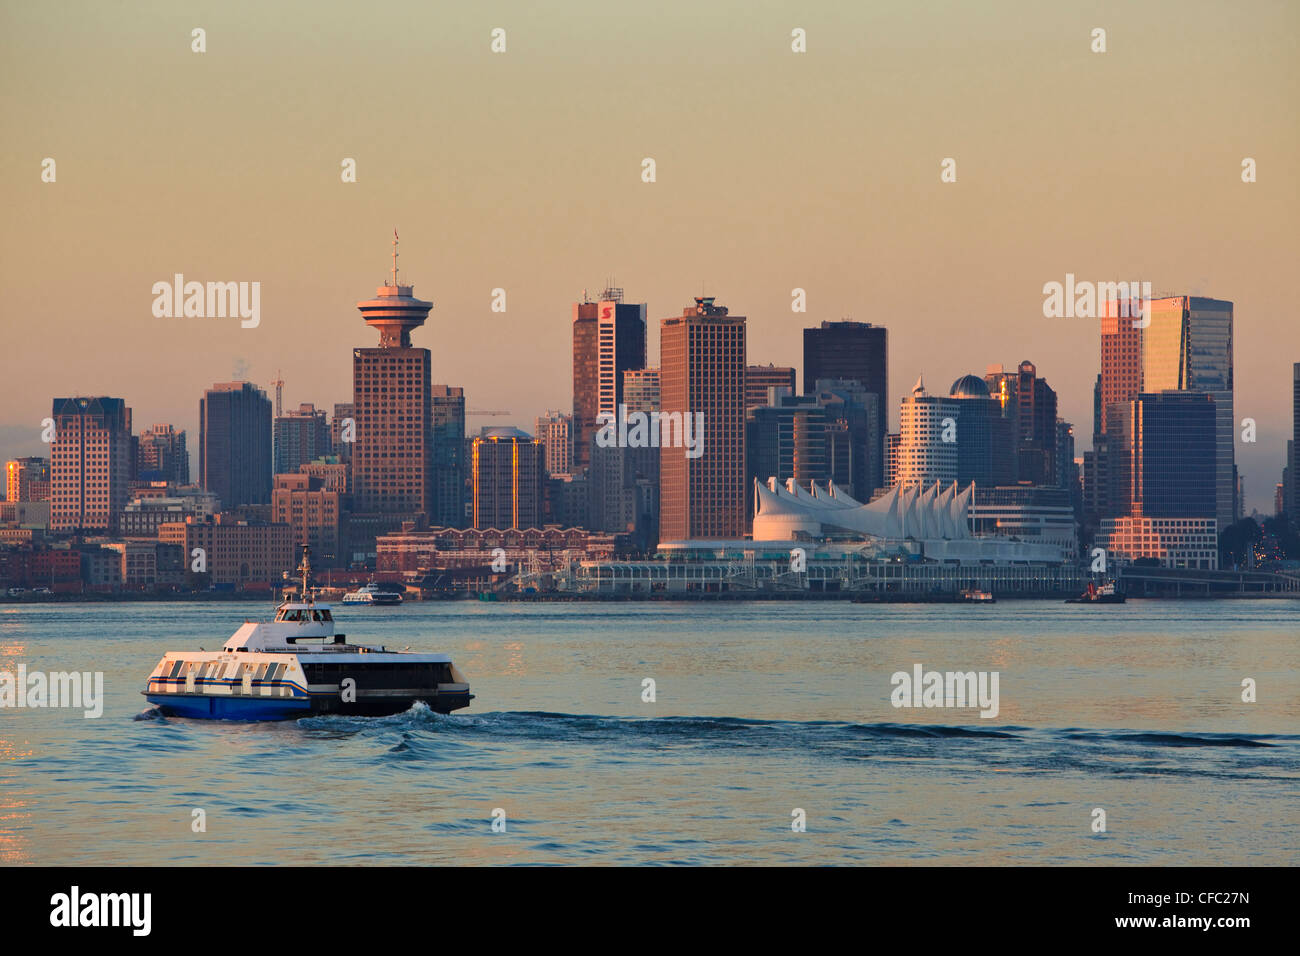 The Seabus departs Lonsdale Quay linking the downtown of Vancouver with North Vancouver, British Columbia Canada. - Stock Image